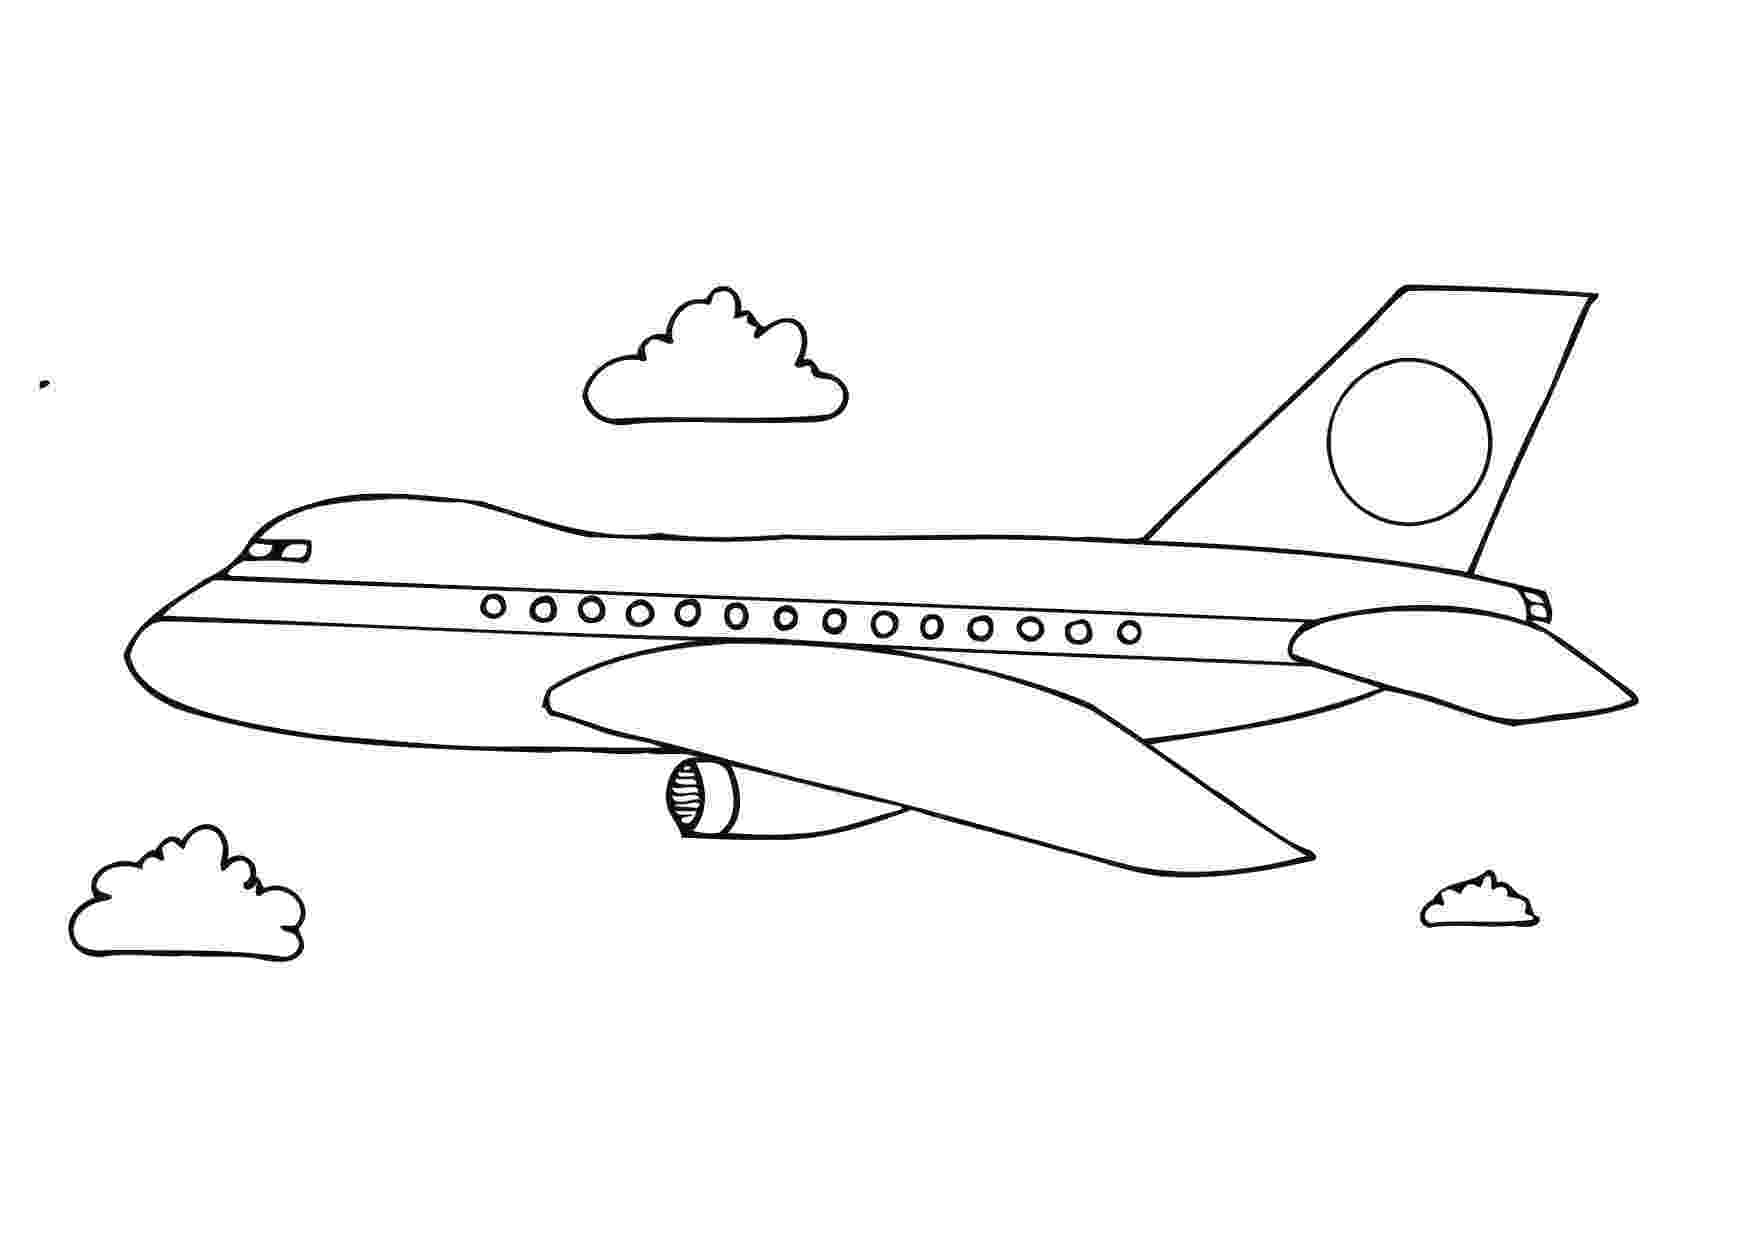 picture of an airplane to color print download the sophisticated transportation of picture an of to color airplane